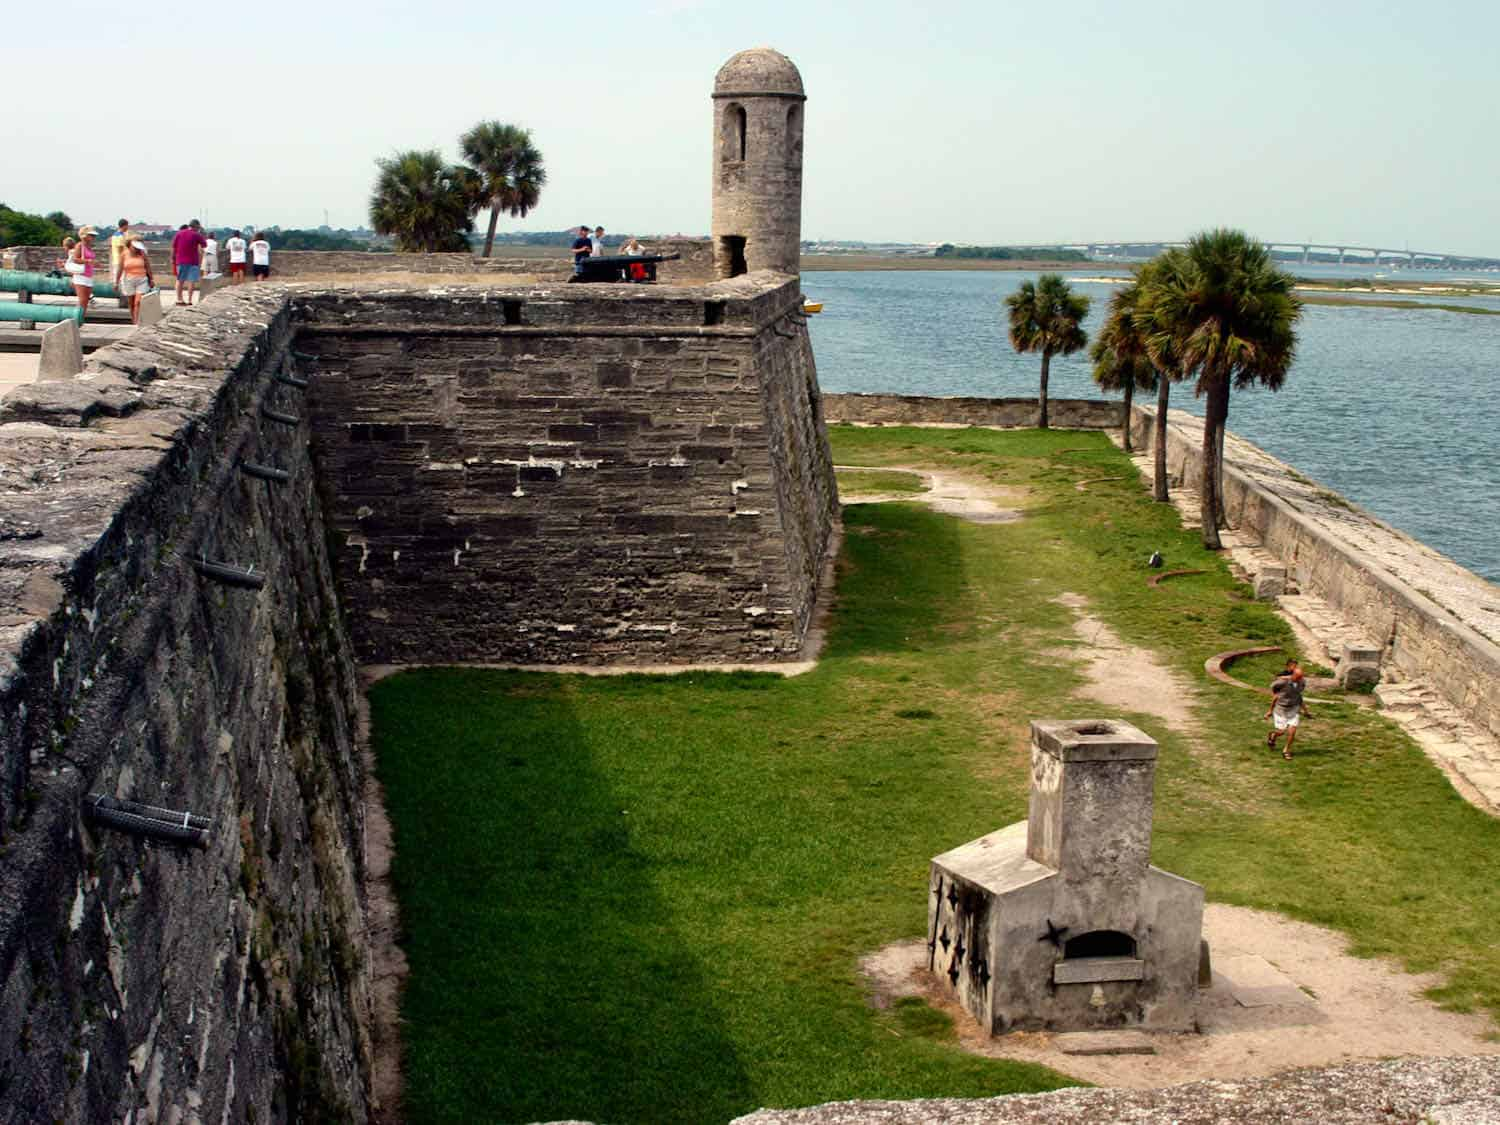 Exploring historic St. Augustine: New Look at an Old City